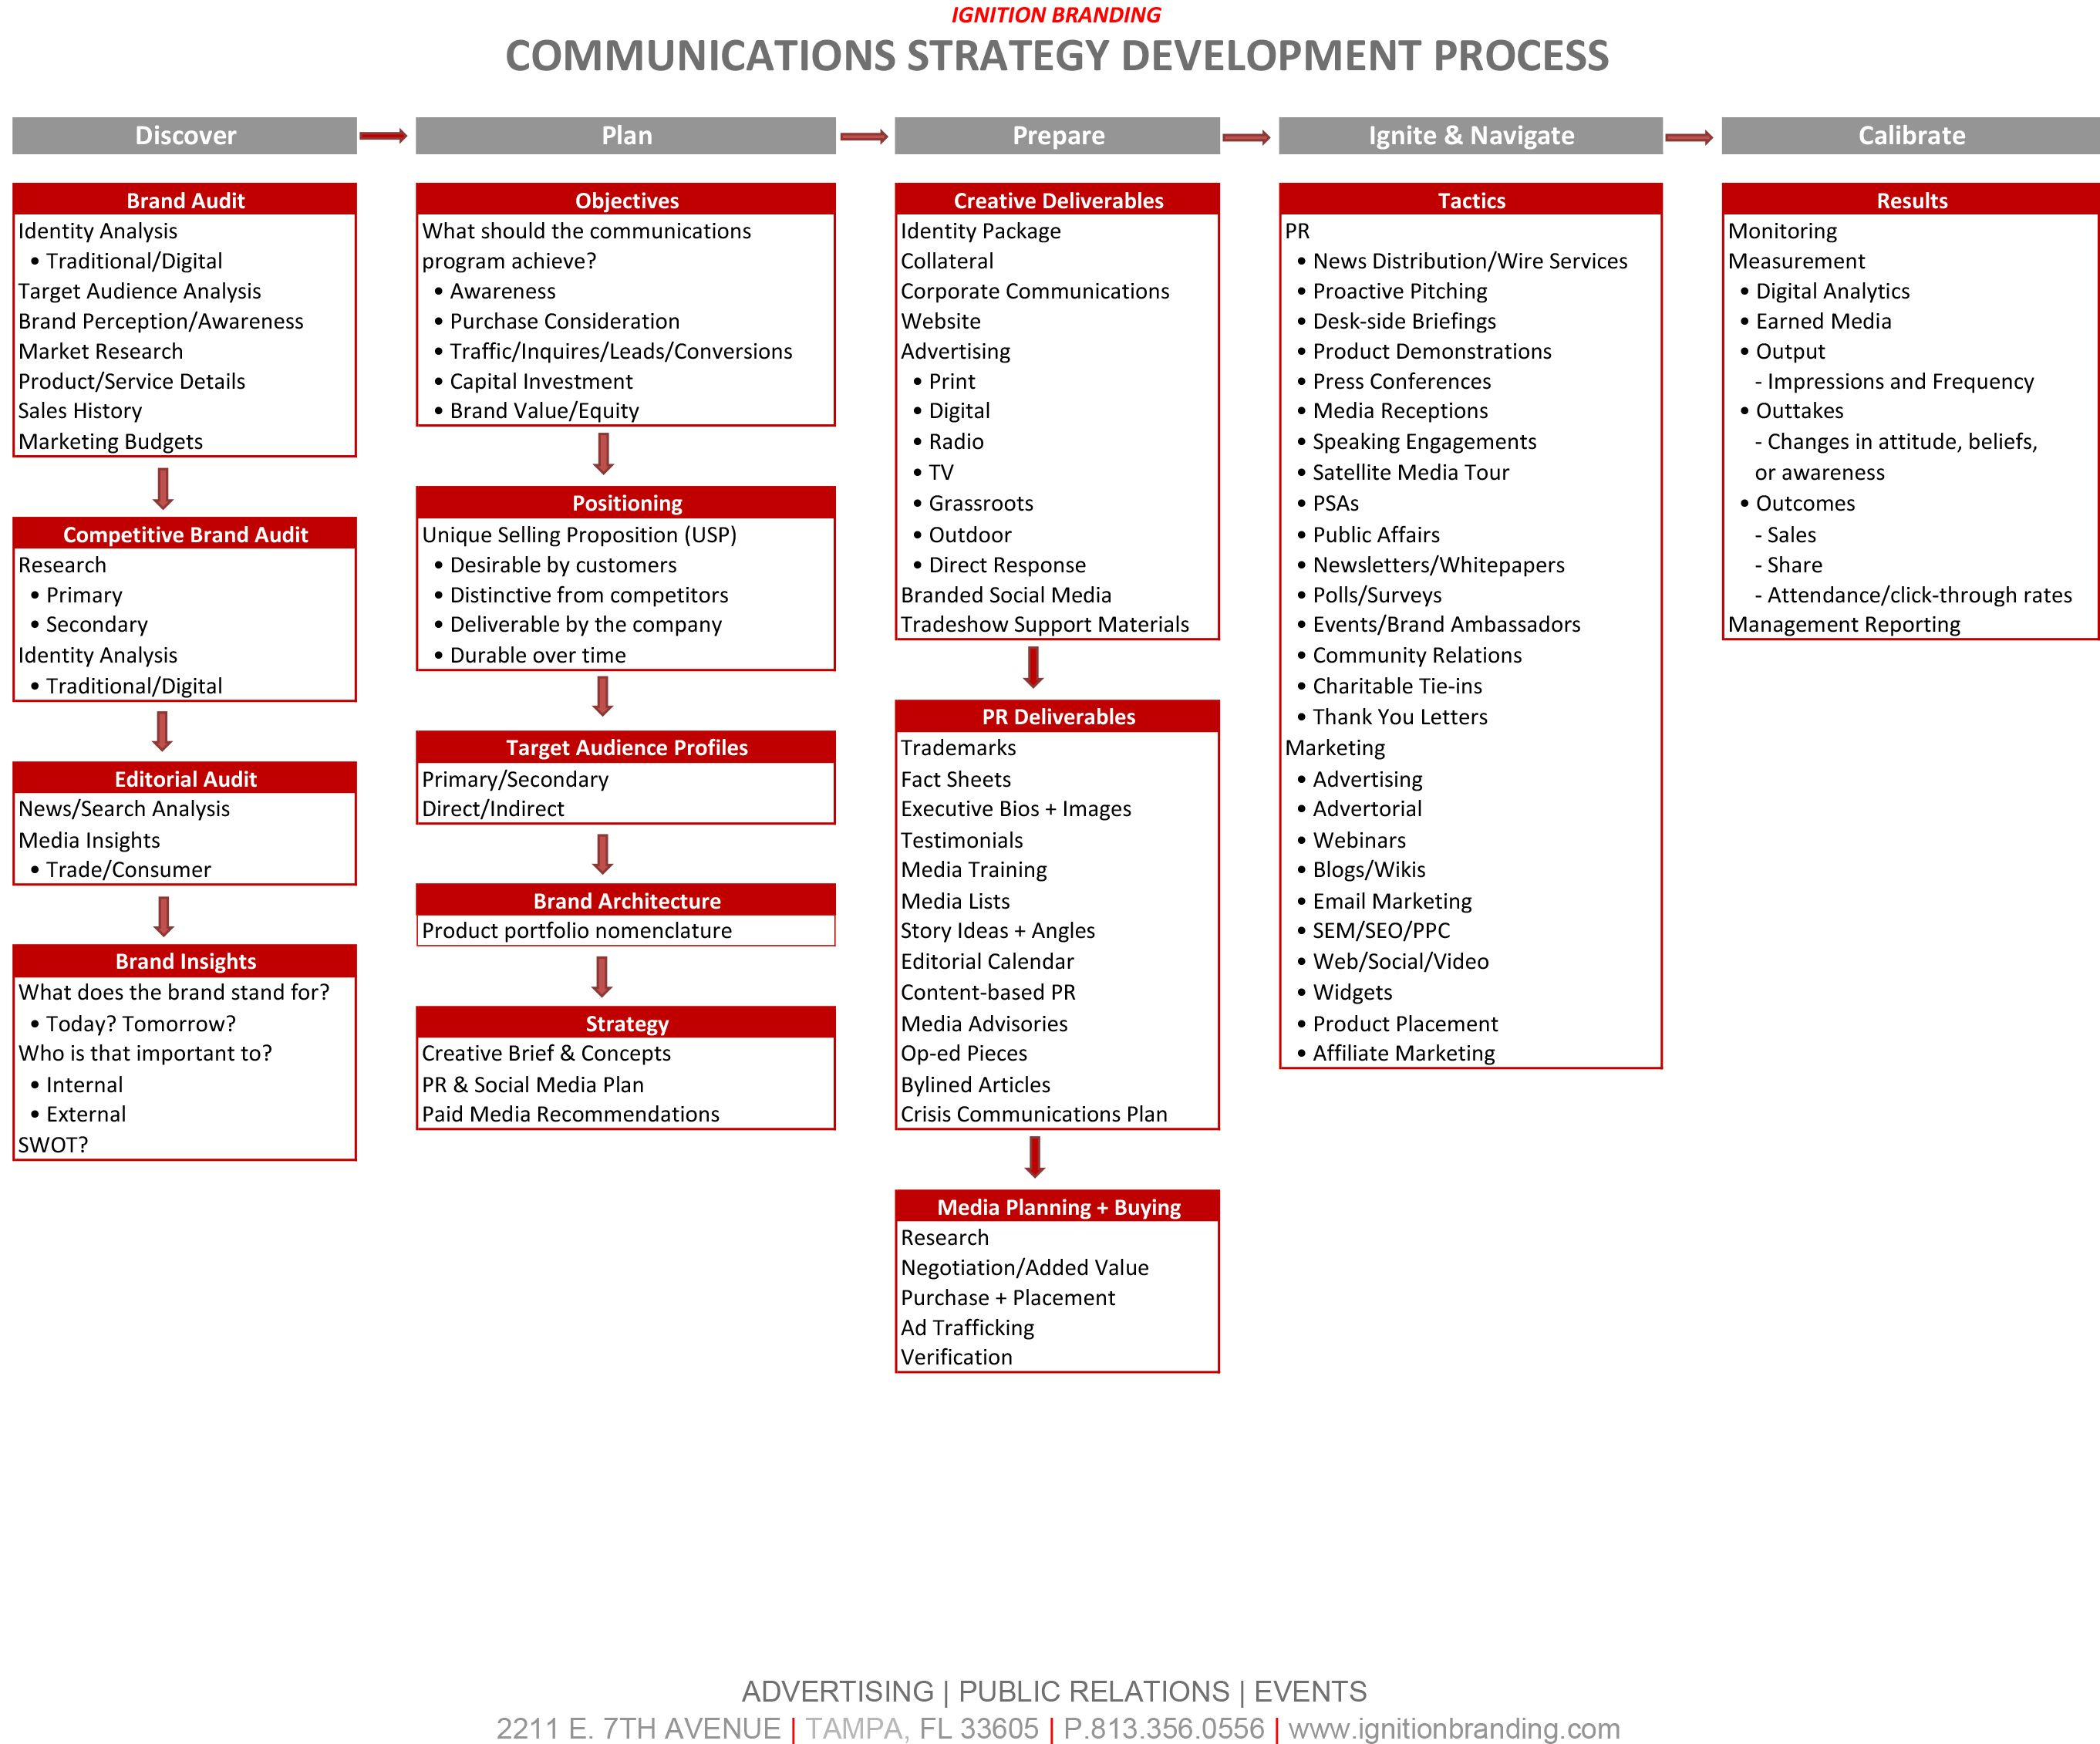 communication marketing strategy Google Search – Communication Strategy